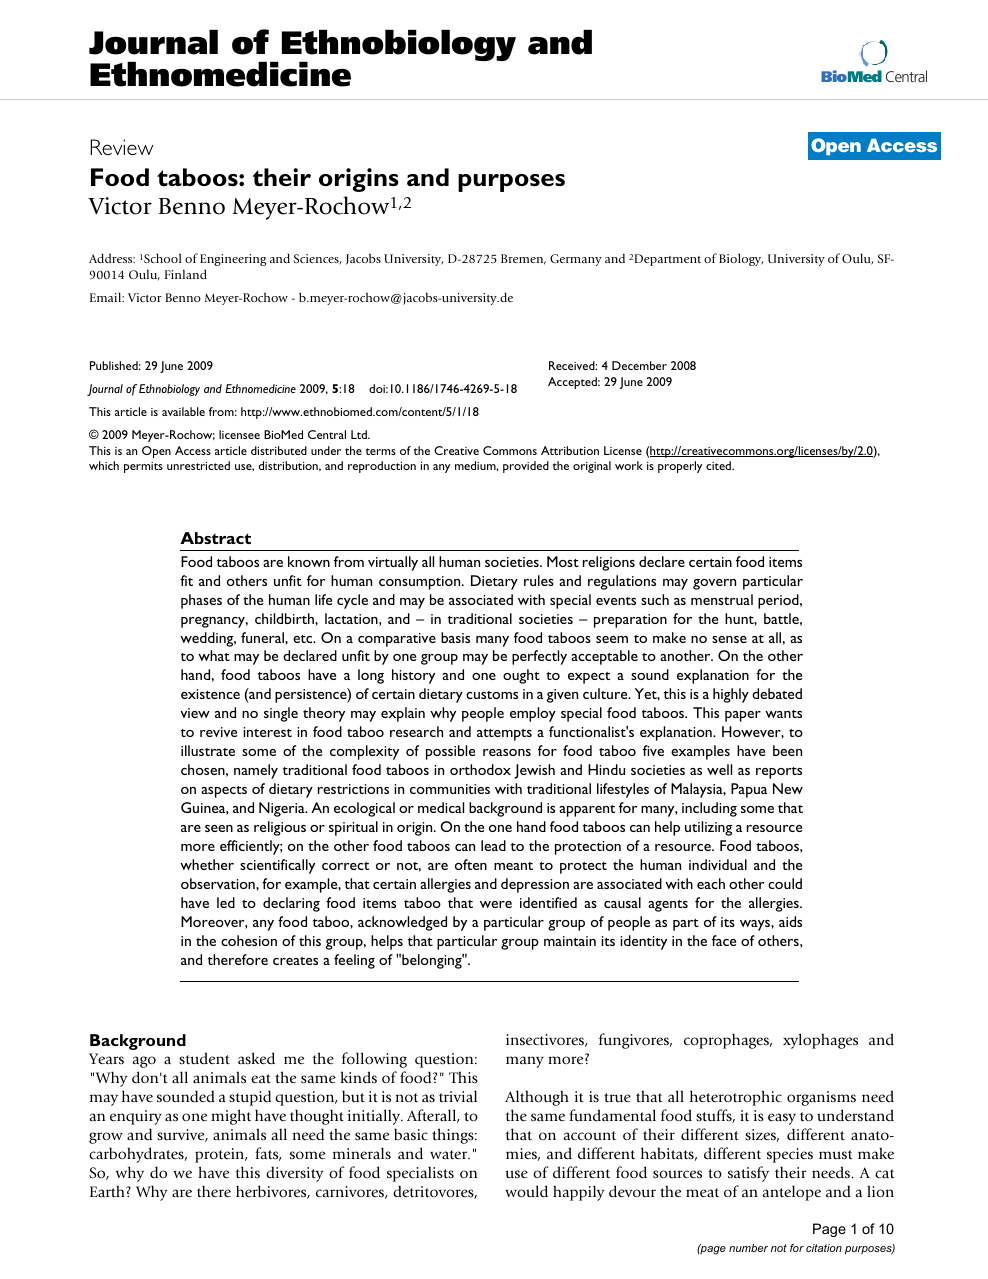 Food taboos: their origins and purposes – topic of research